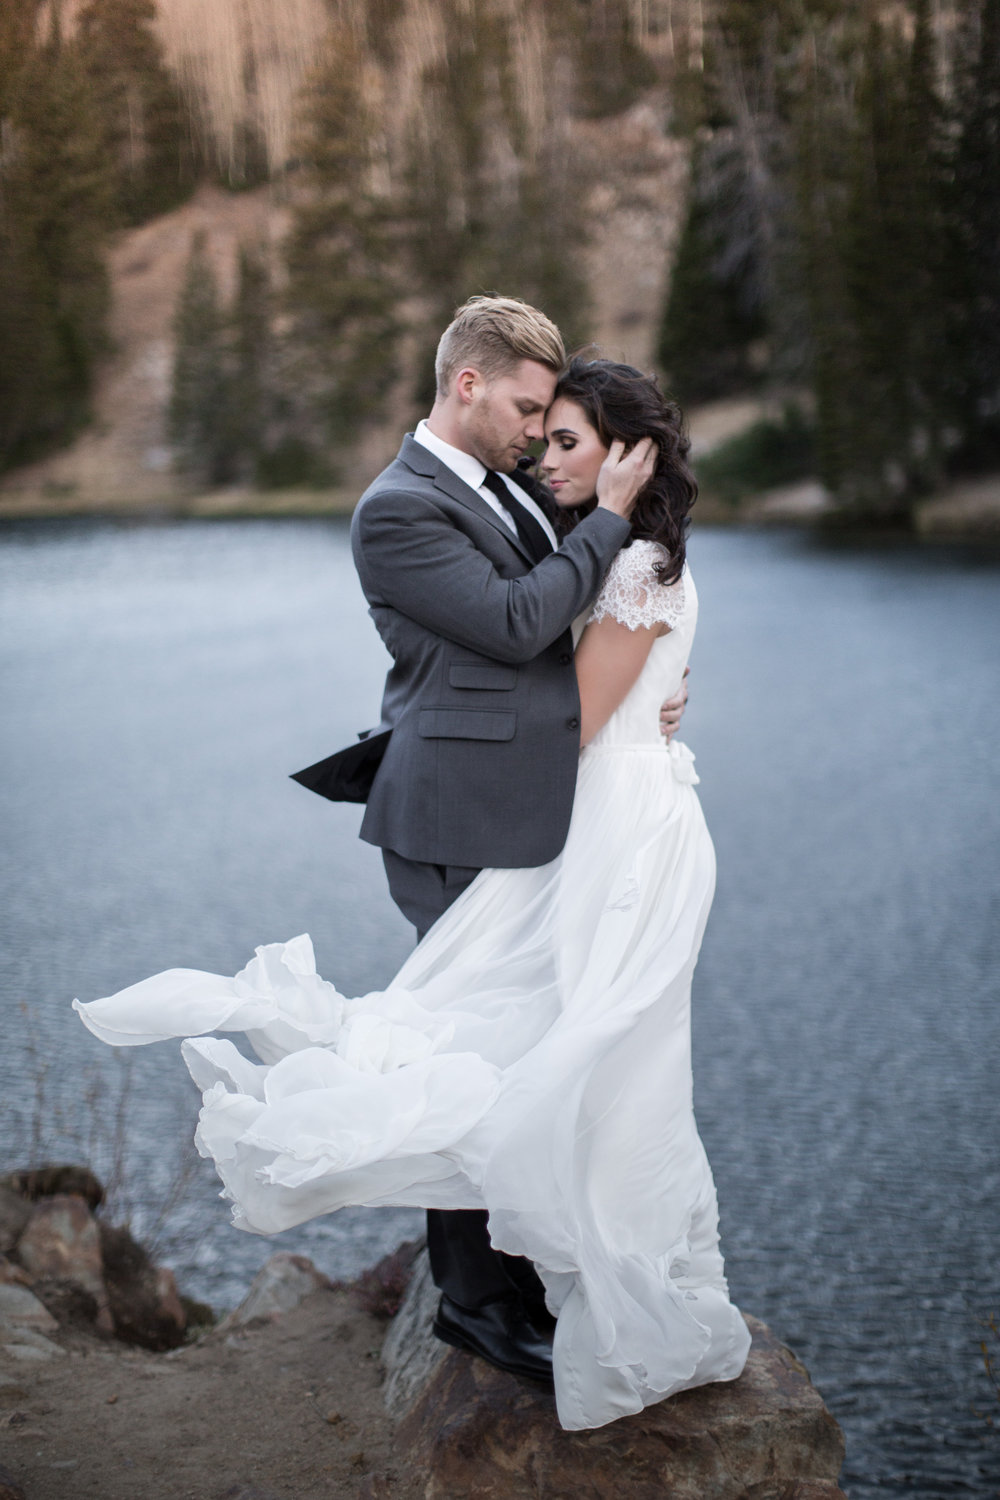 UtahValleyBrideShootTR2016 (40 of 110).jpg